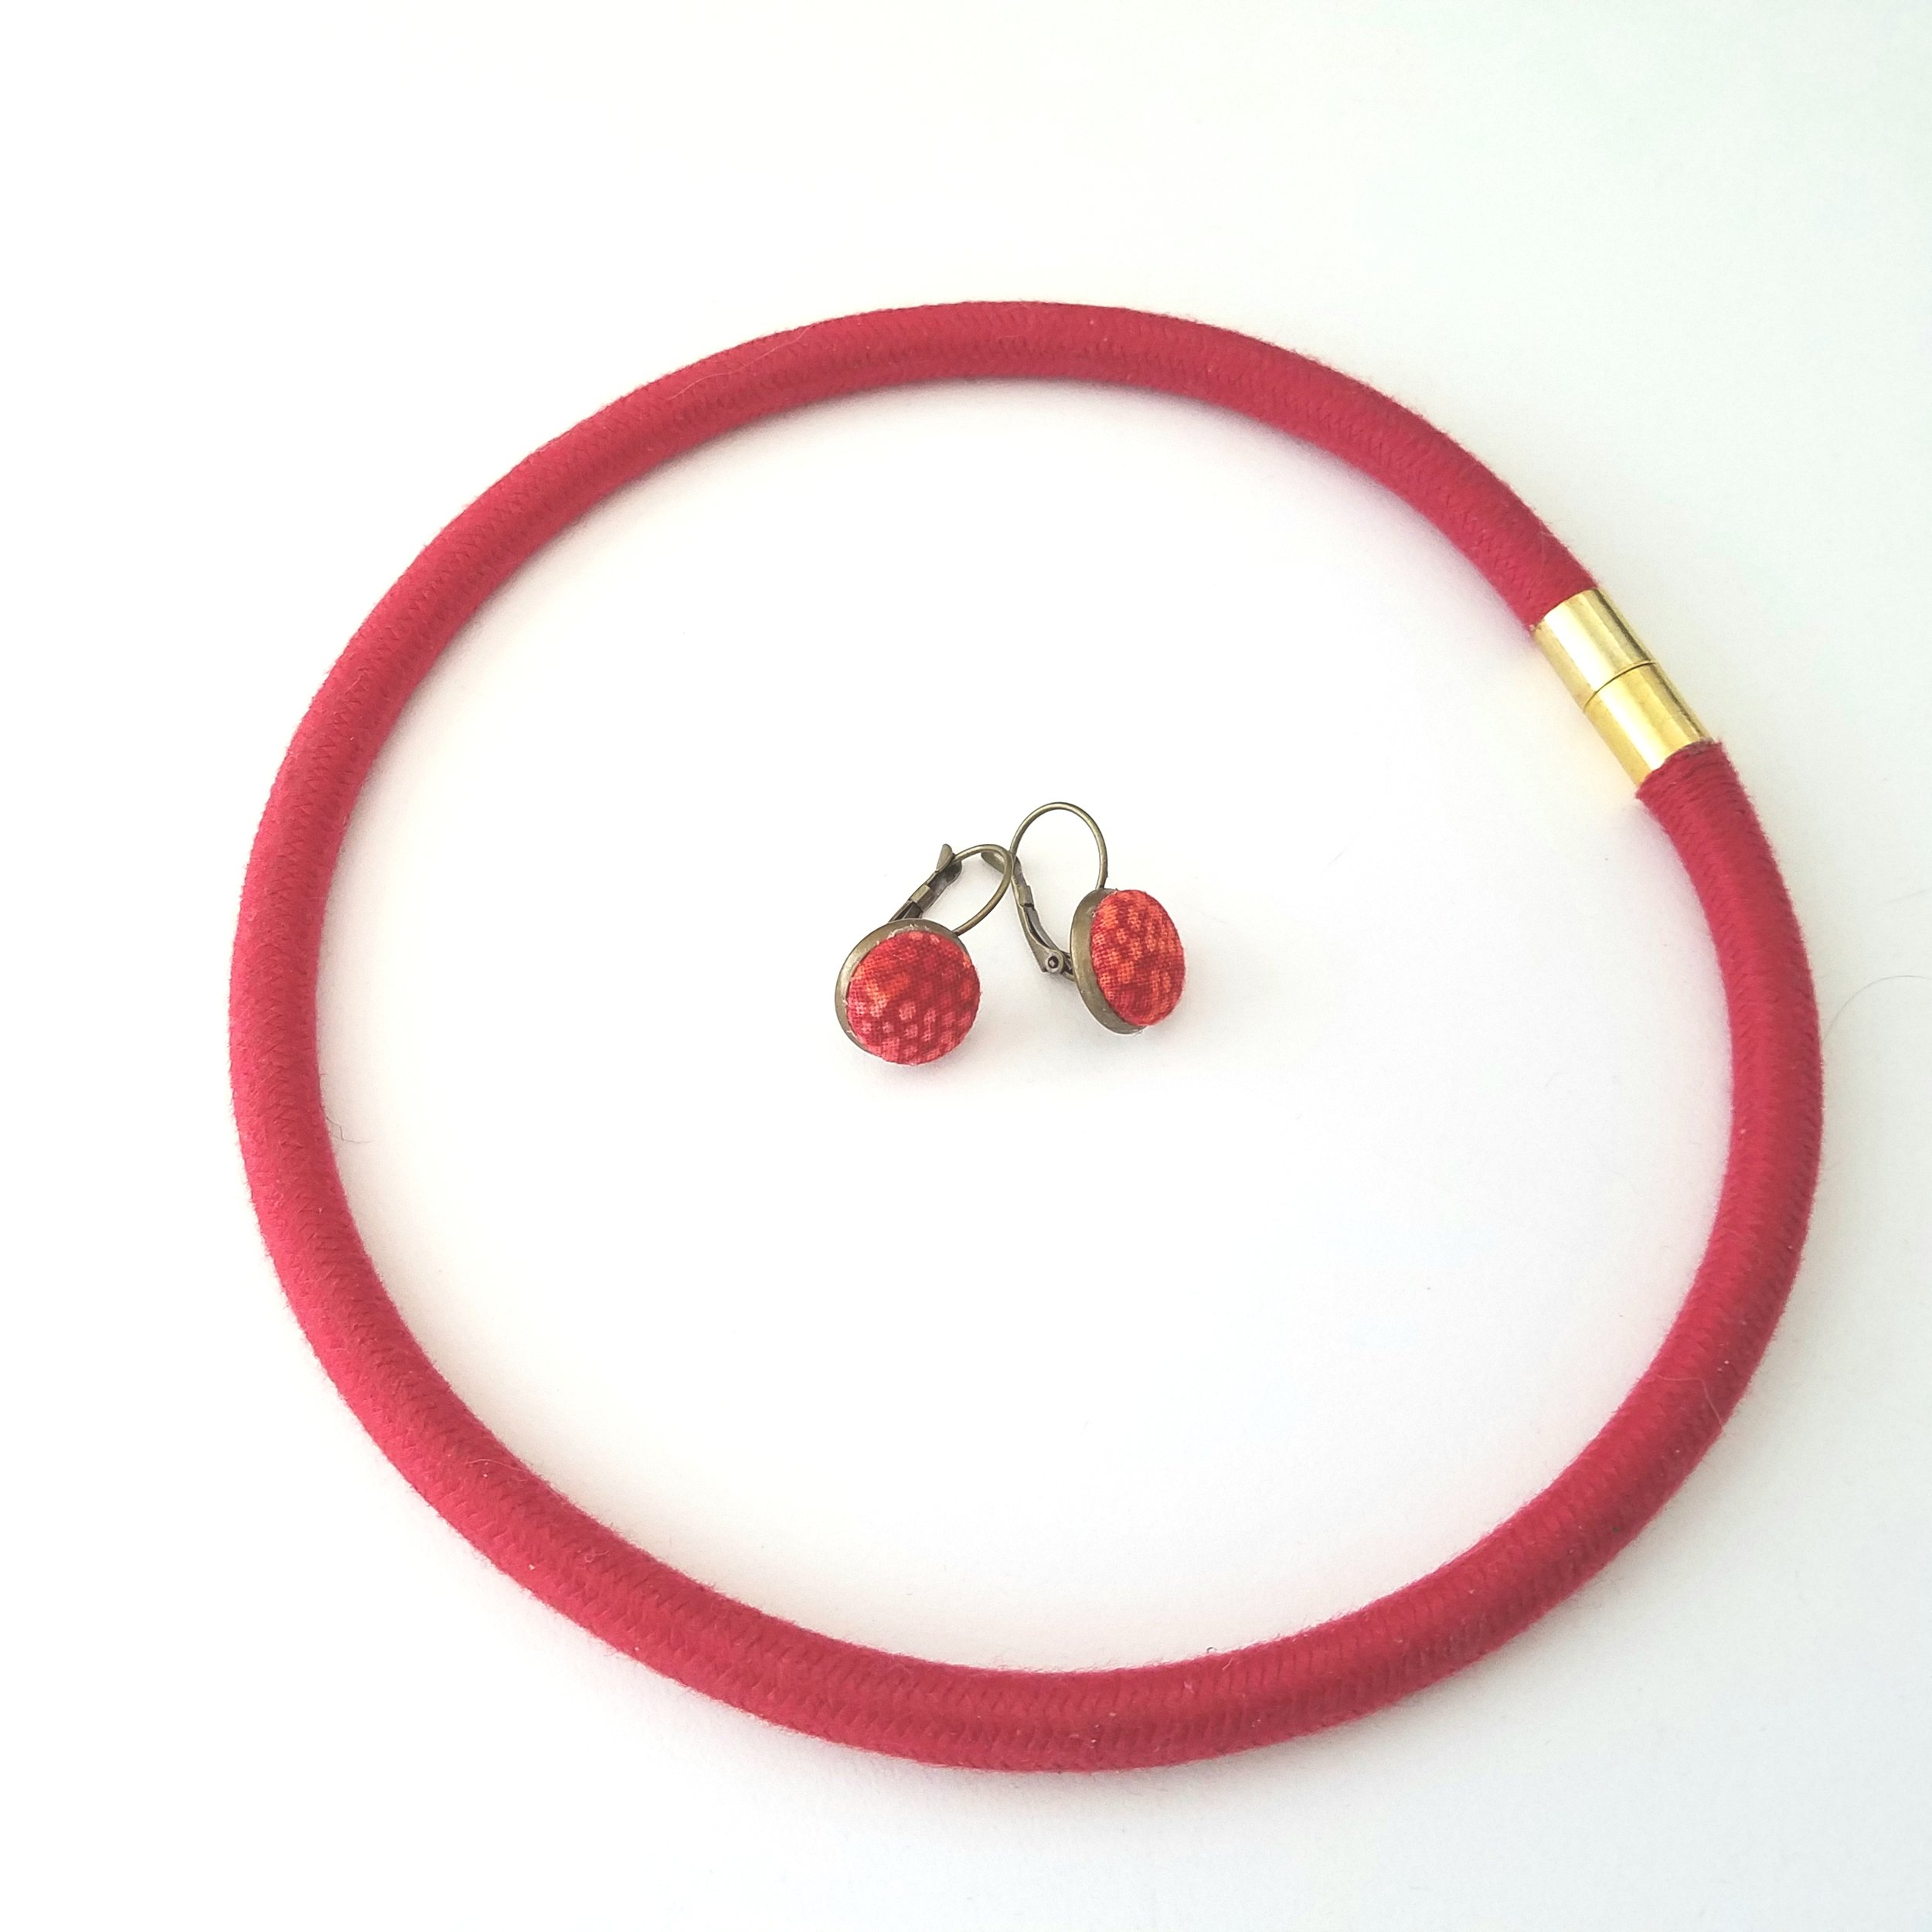 textile jewelry red.jpg